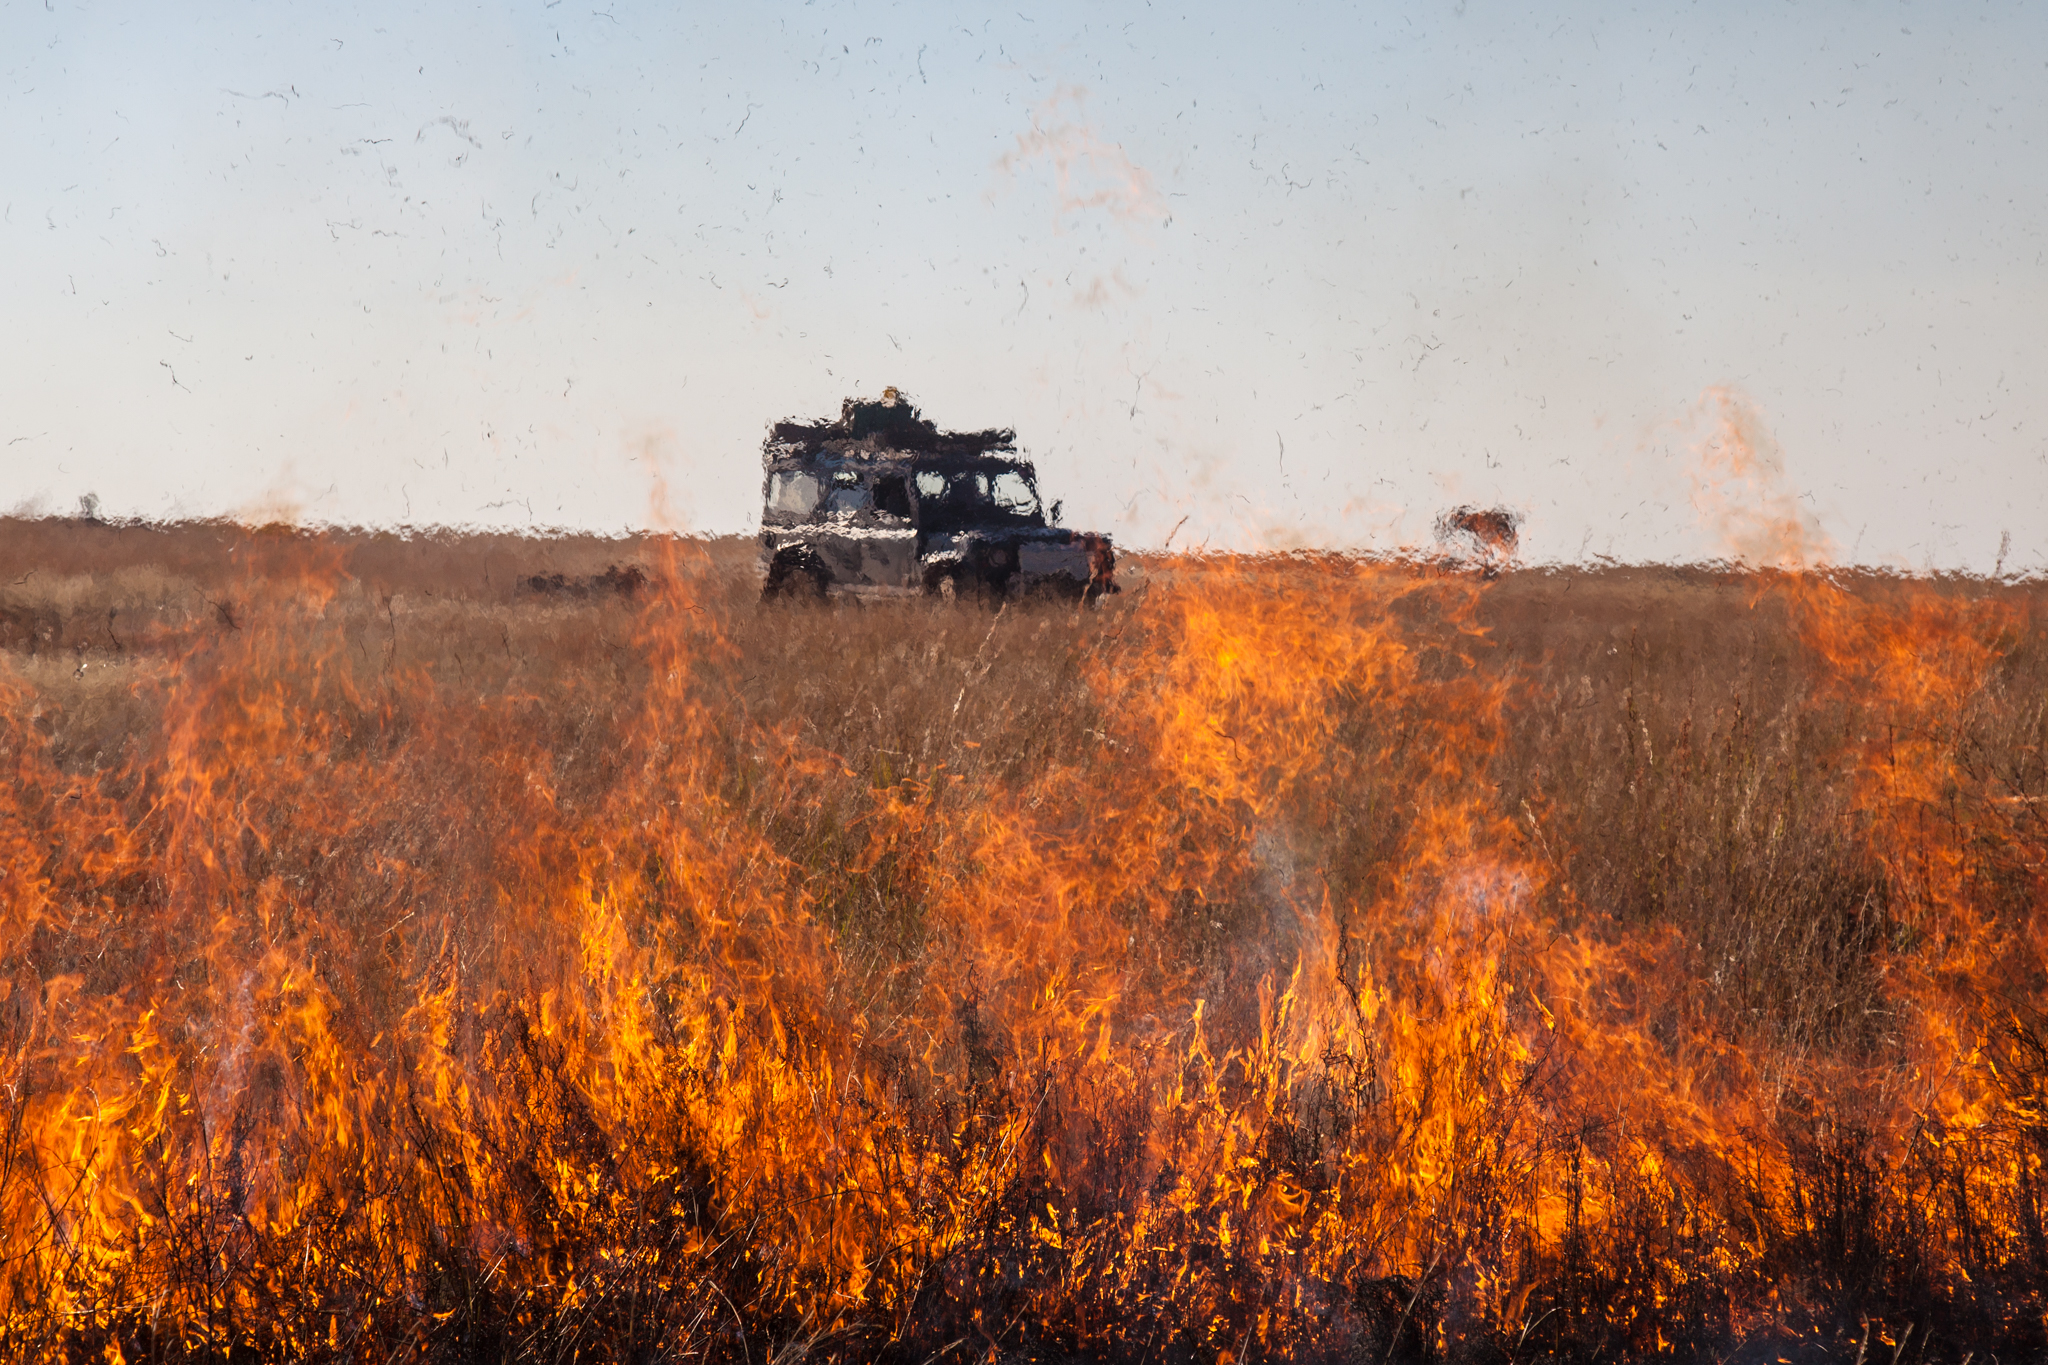 The Grasslands Are Burnt in the Dry Season to Encourage Green Shoots that Cattle Can Feed on